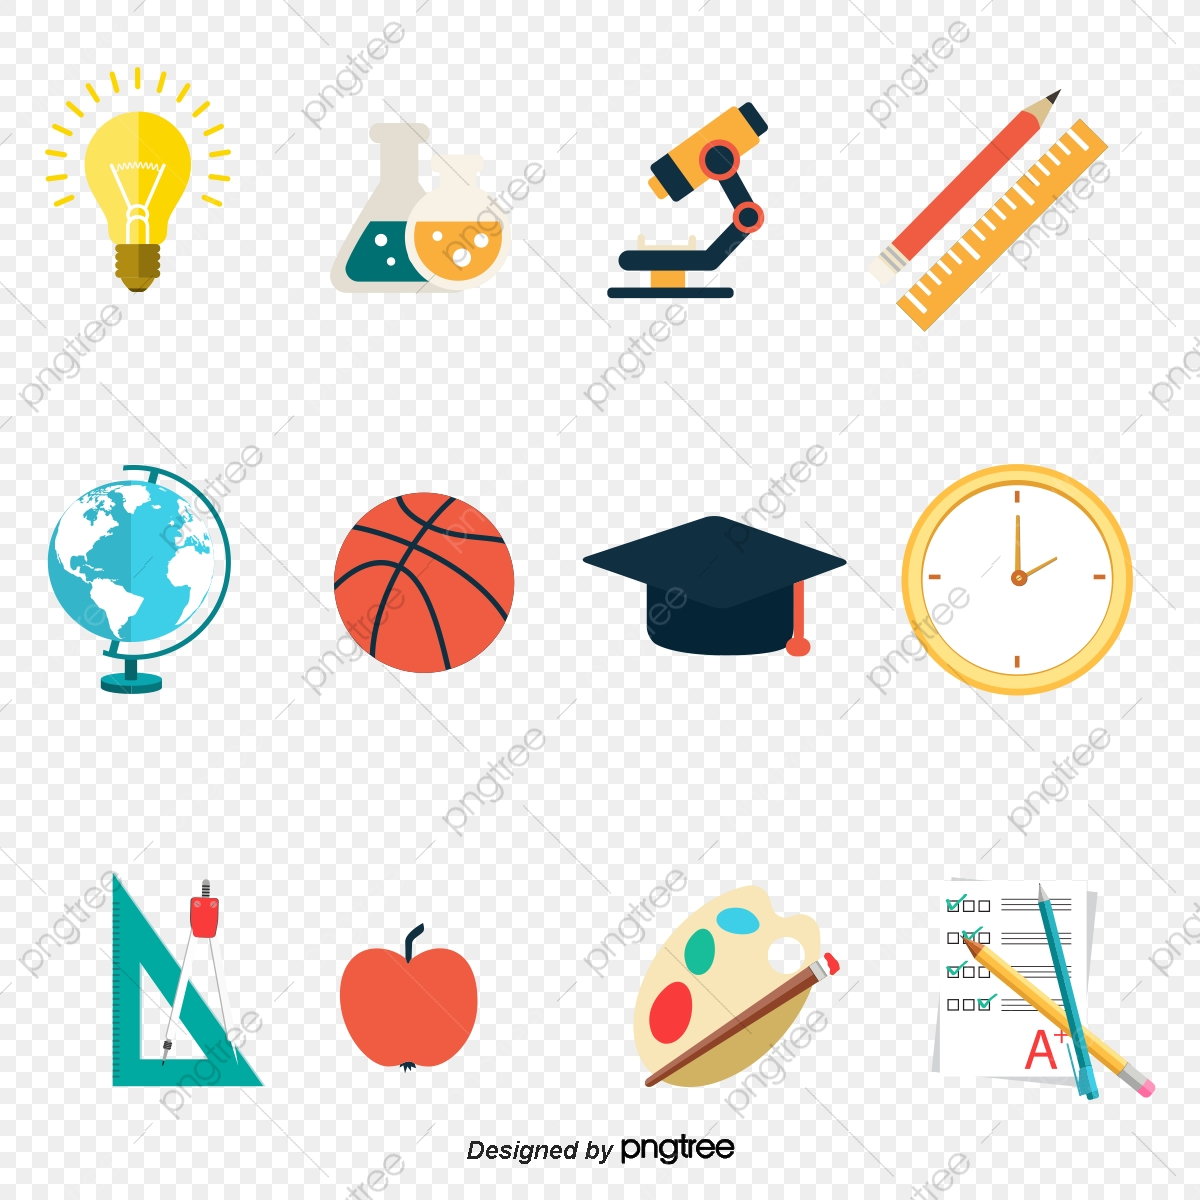 School Education Related Icons Hand Painted Cartoon School Learn Png And Vector With Transparent Background For Free Download